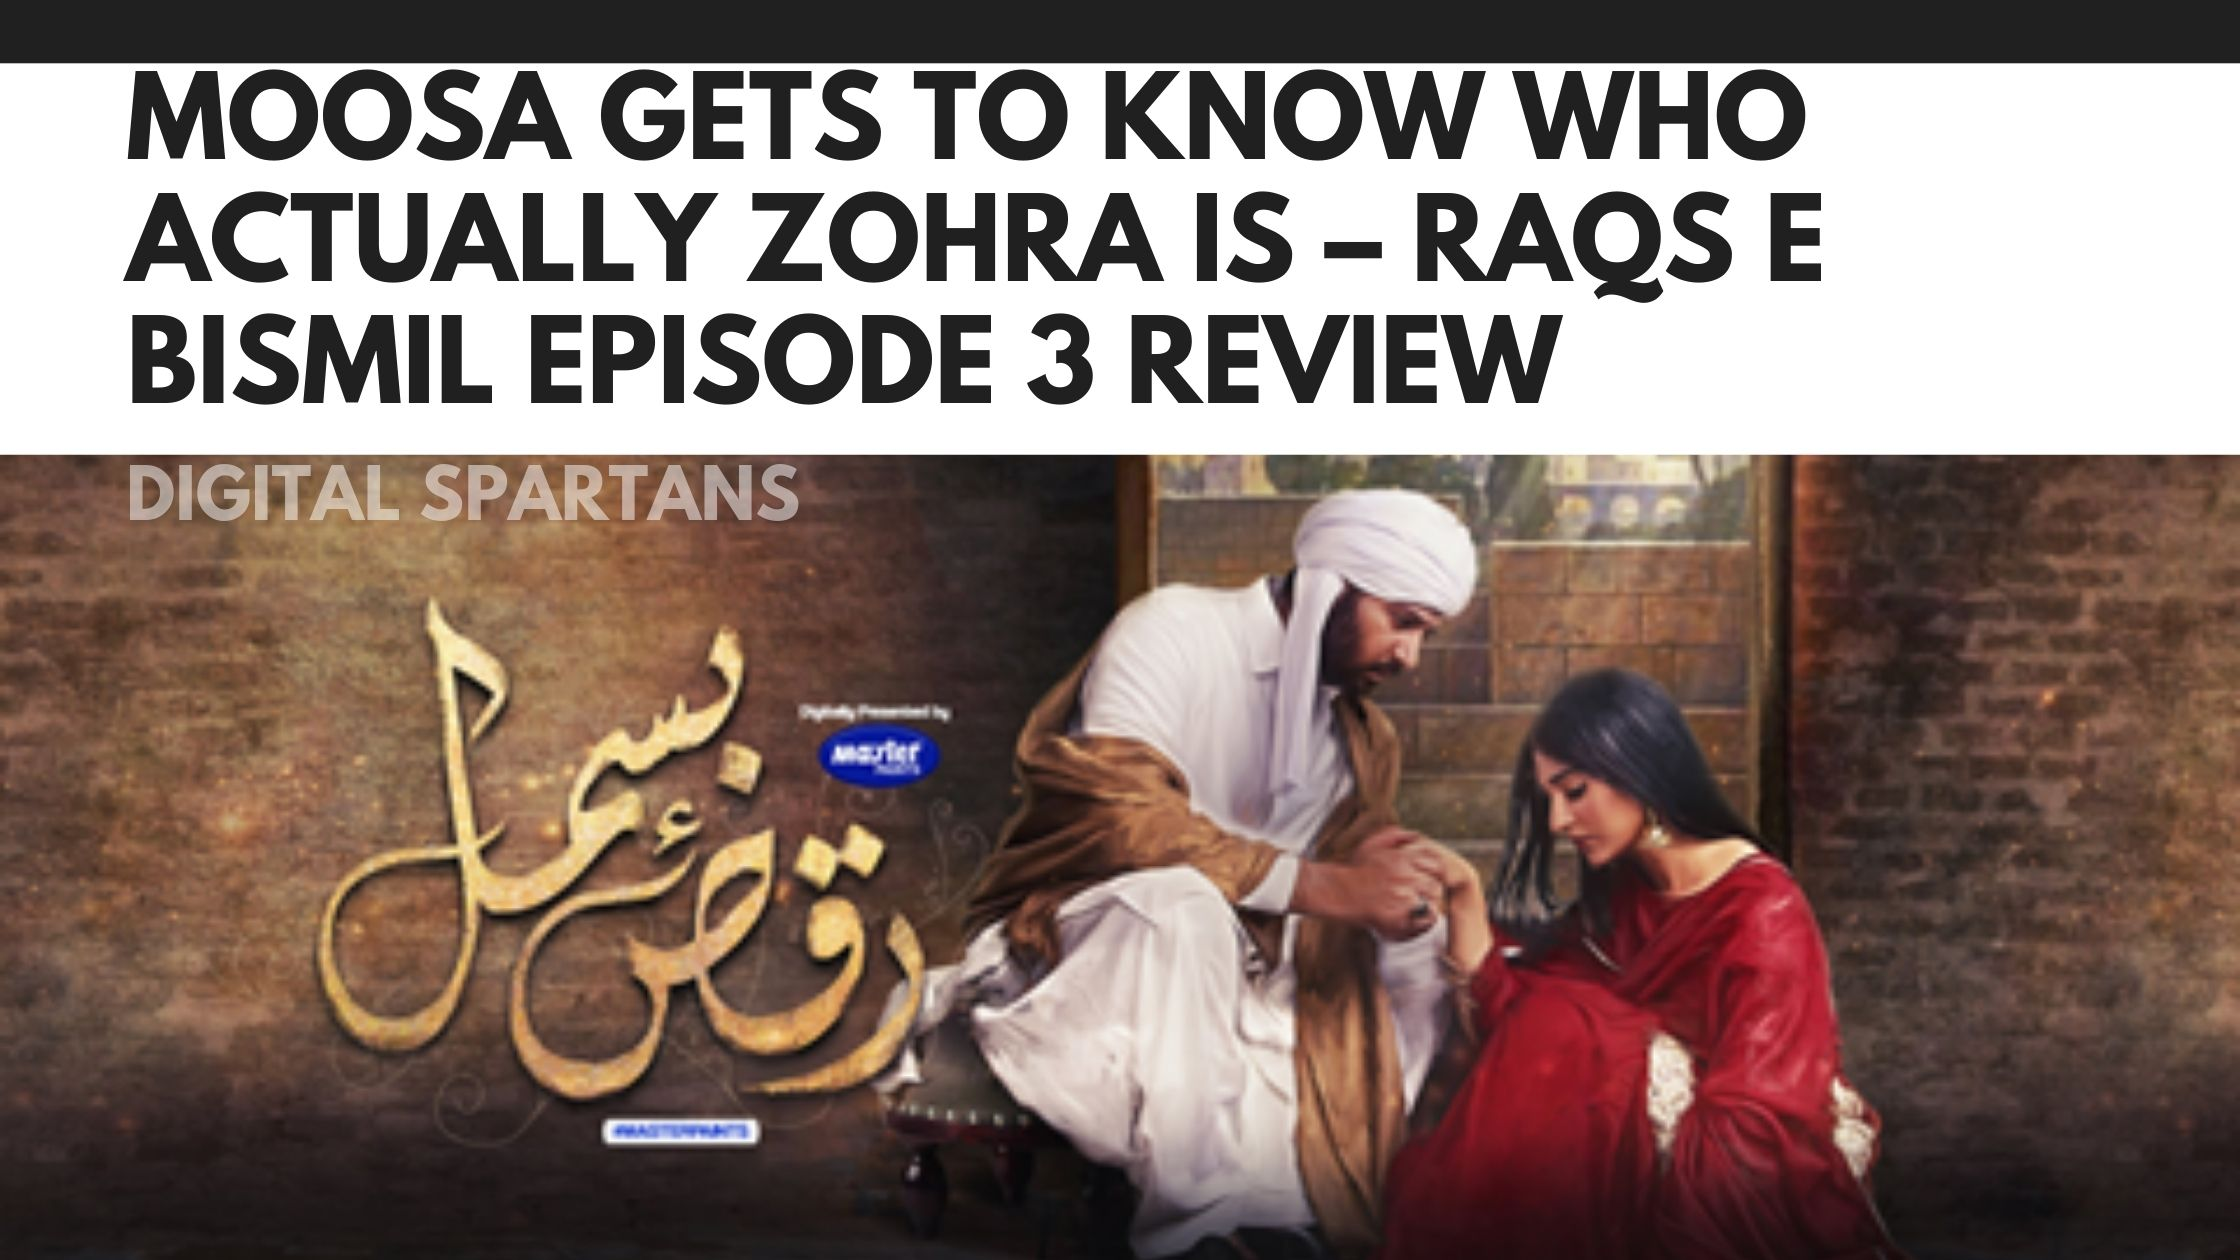 Moosa Gets to Know Who Actually Zohra Is – Raqs E Bismil Episode 3 Review